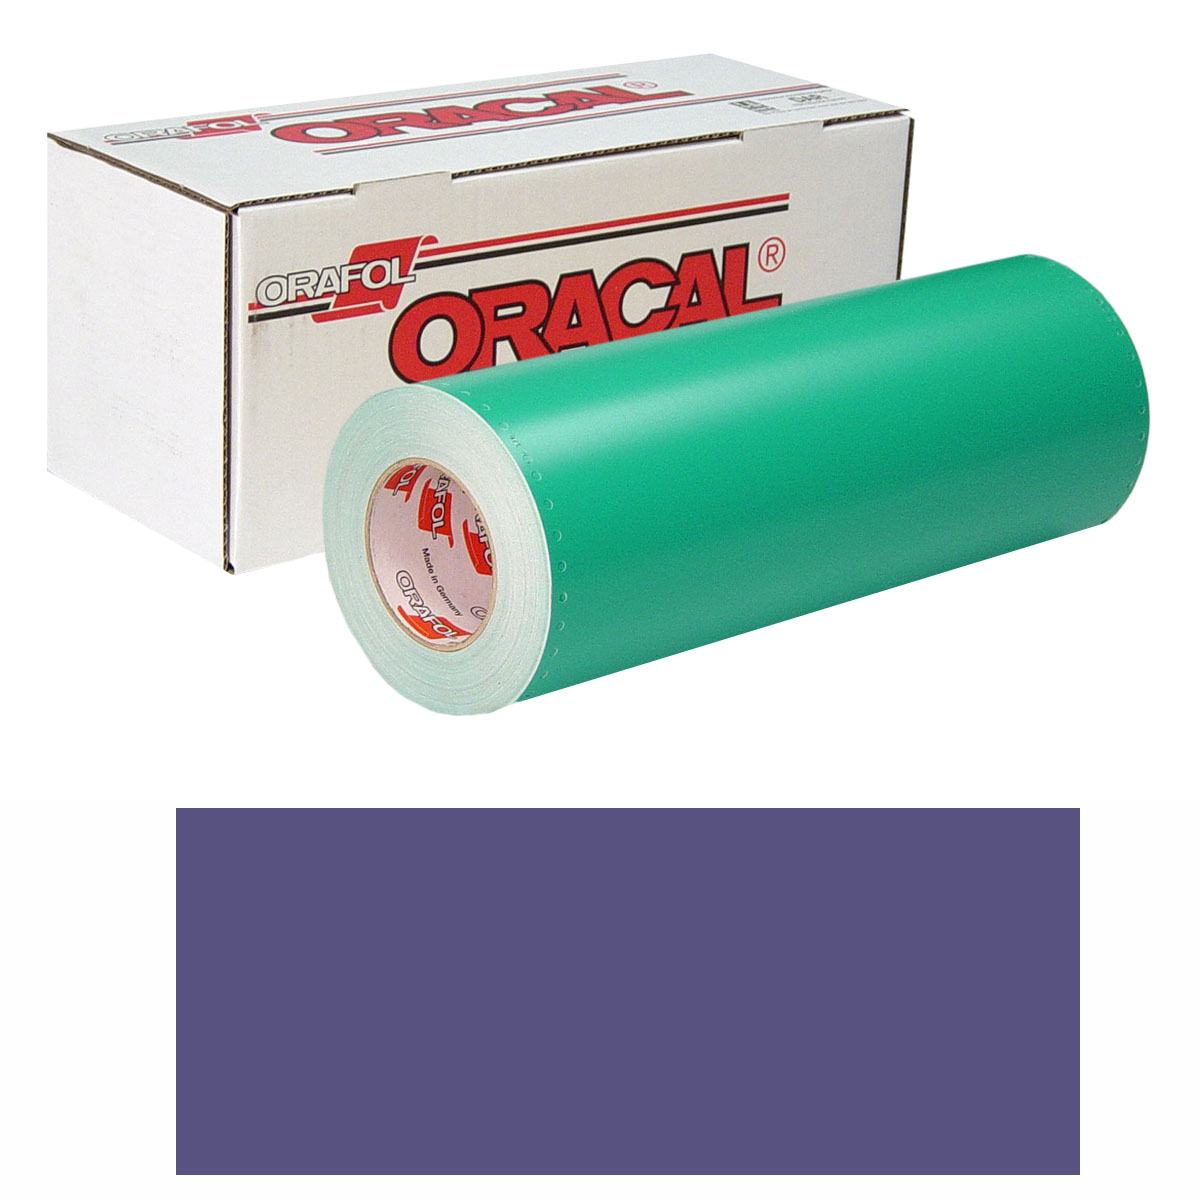 ORACAL 8500 Unp 24In X 50Yd 012 Lilac